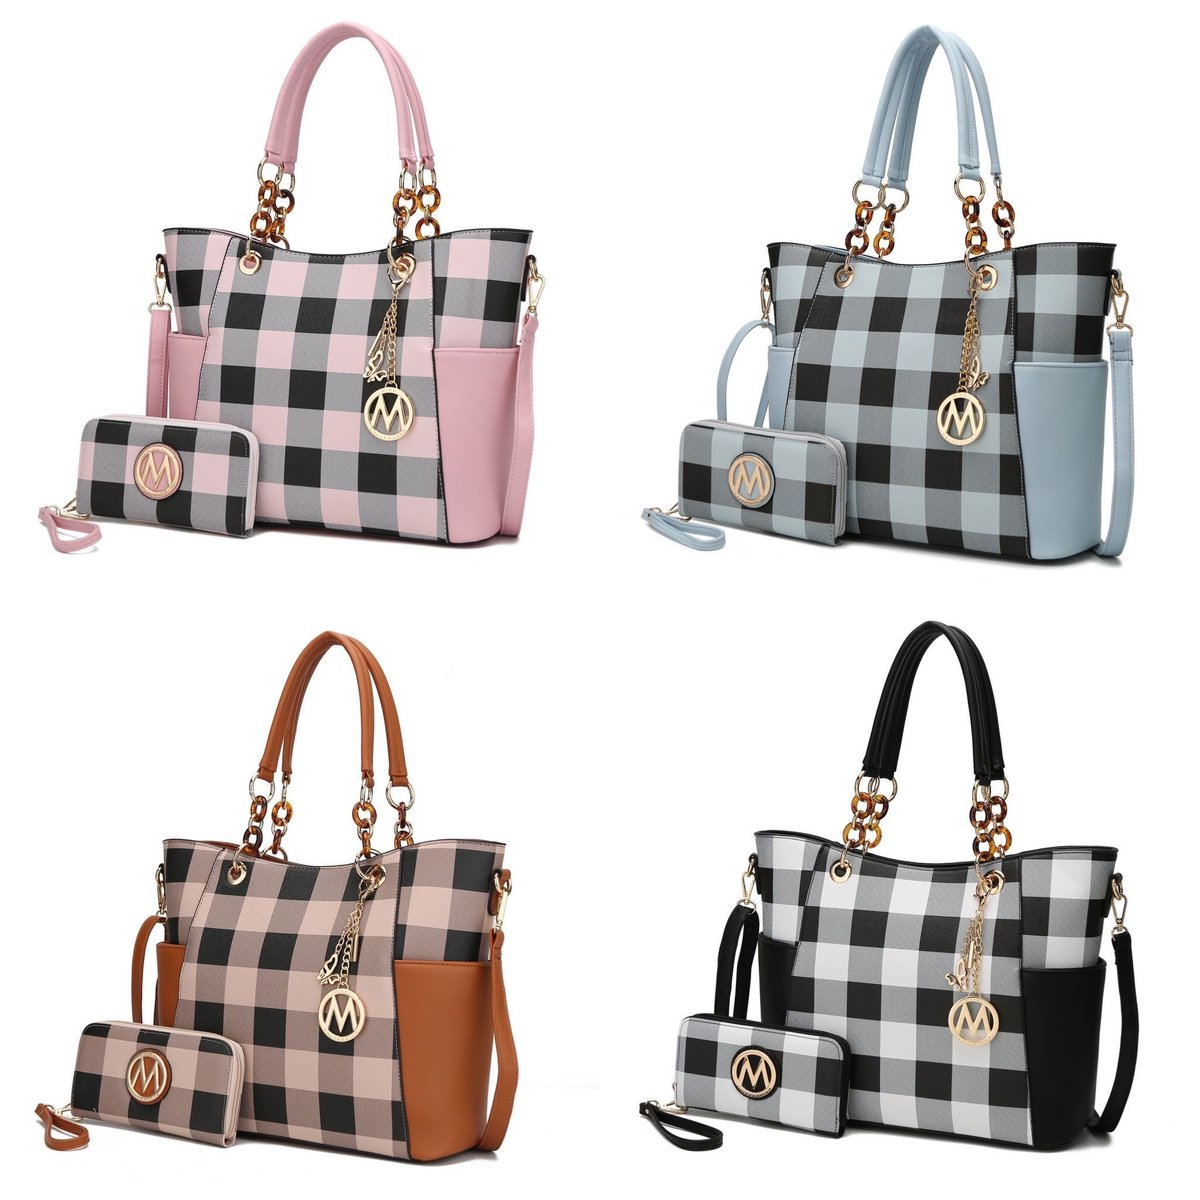 ad: 85% off   MKF Collection Bonita Checker Tote Bag & Wallet Set   https://t.co/2qbKcFApRd https://t.co/2qbKcFApRd